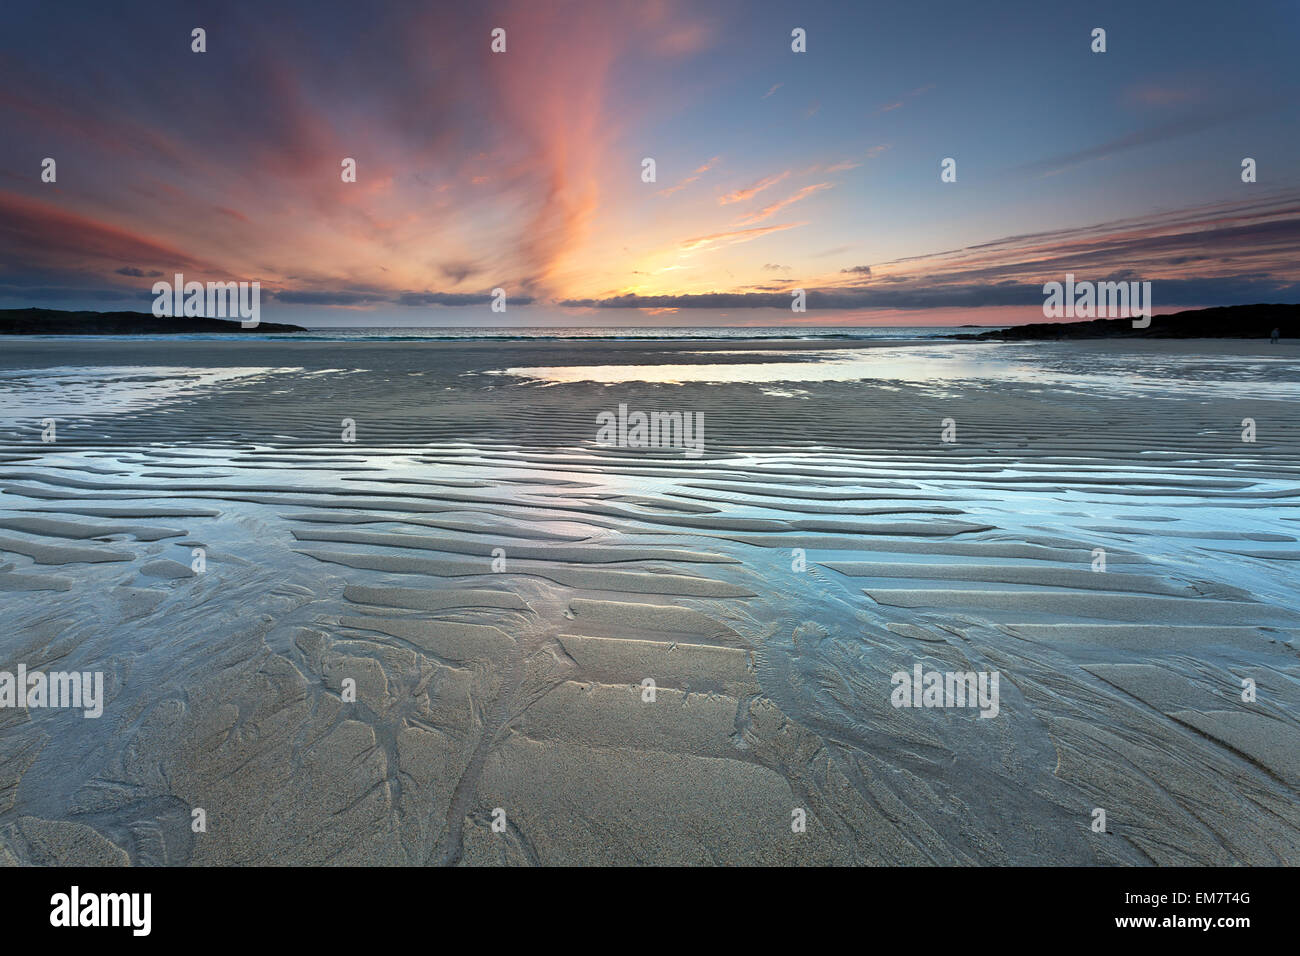 Tangasdale beach, Barra, Outer Hebrides of Scotland : rising tide at sunset - Stock Image